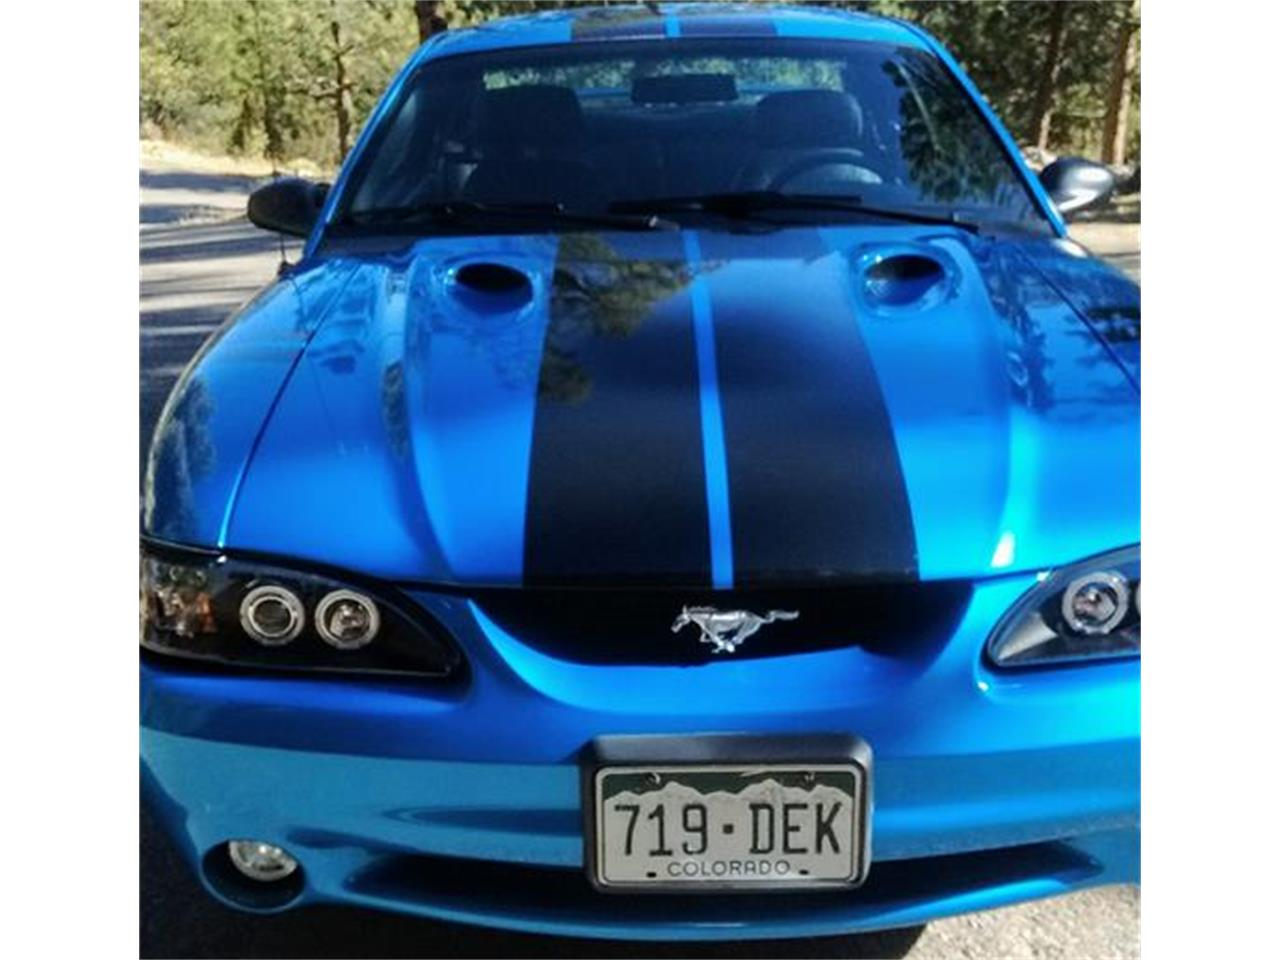 Large Picture of '96 Ford Mustang Cobra located in Denver West Colorado - $9,250.00 - MTB2